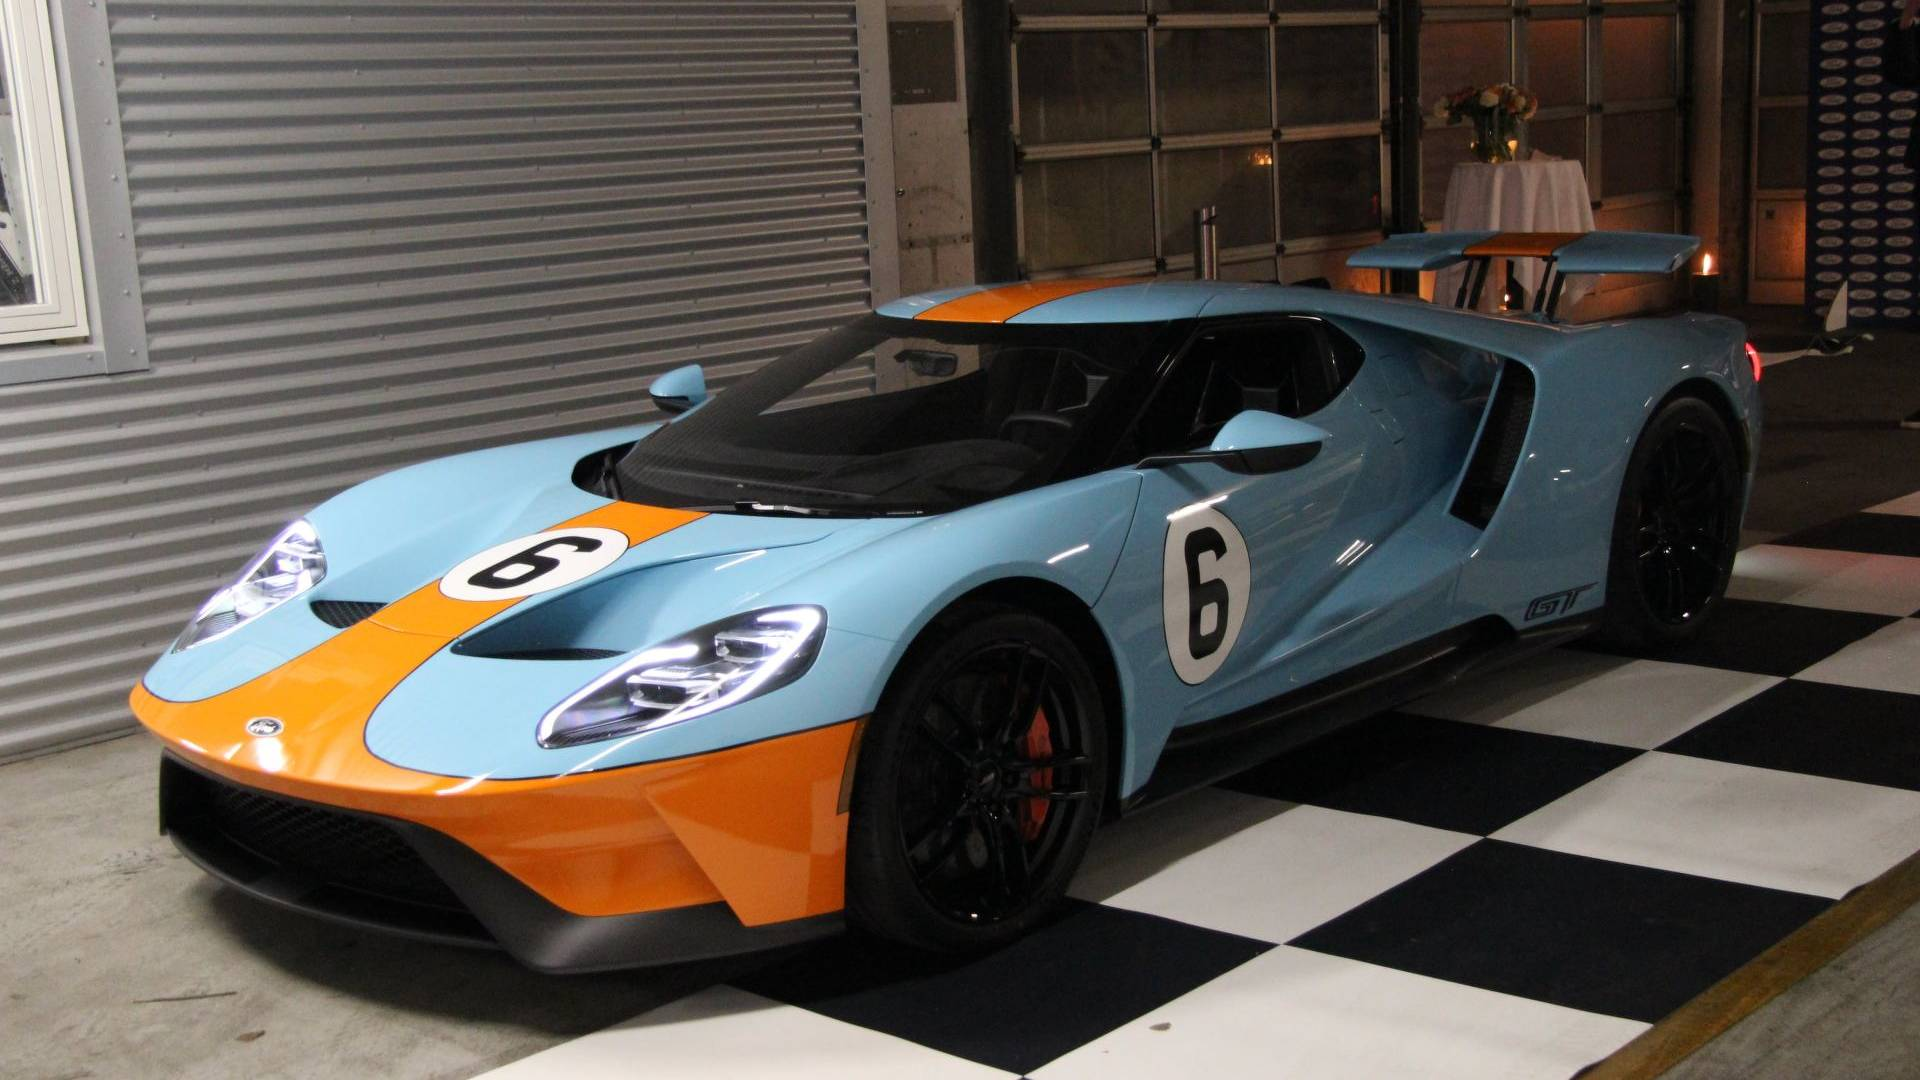 The ford gt is finally in the hands of european customers